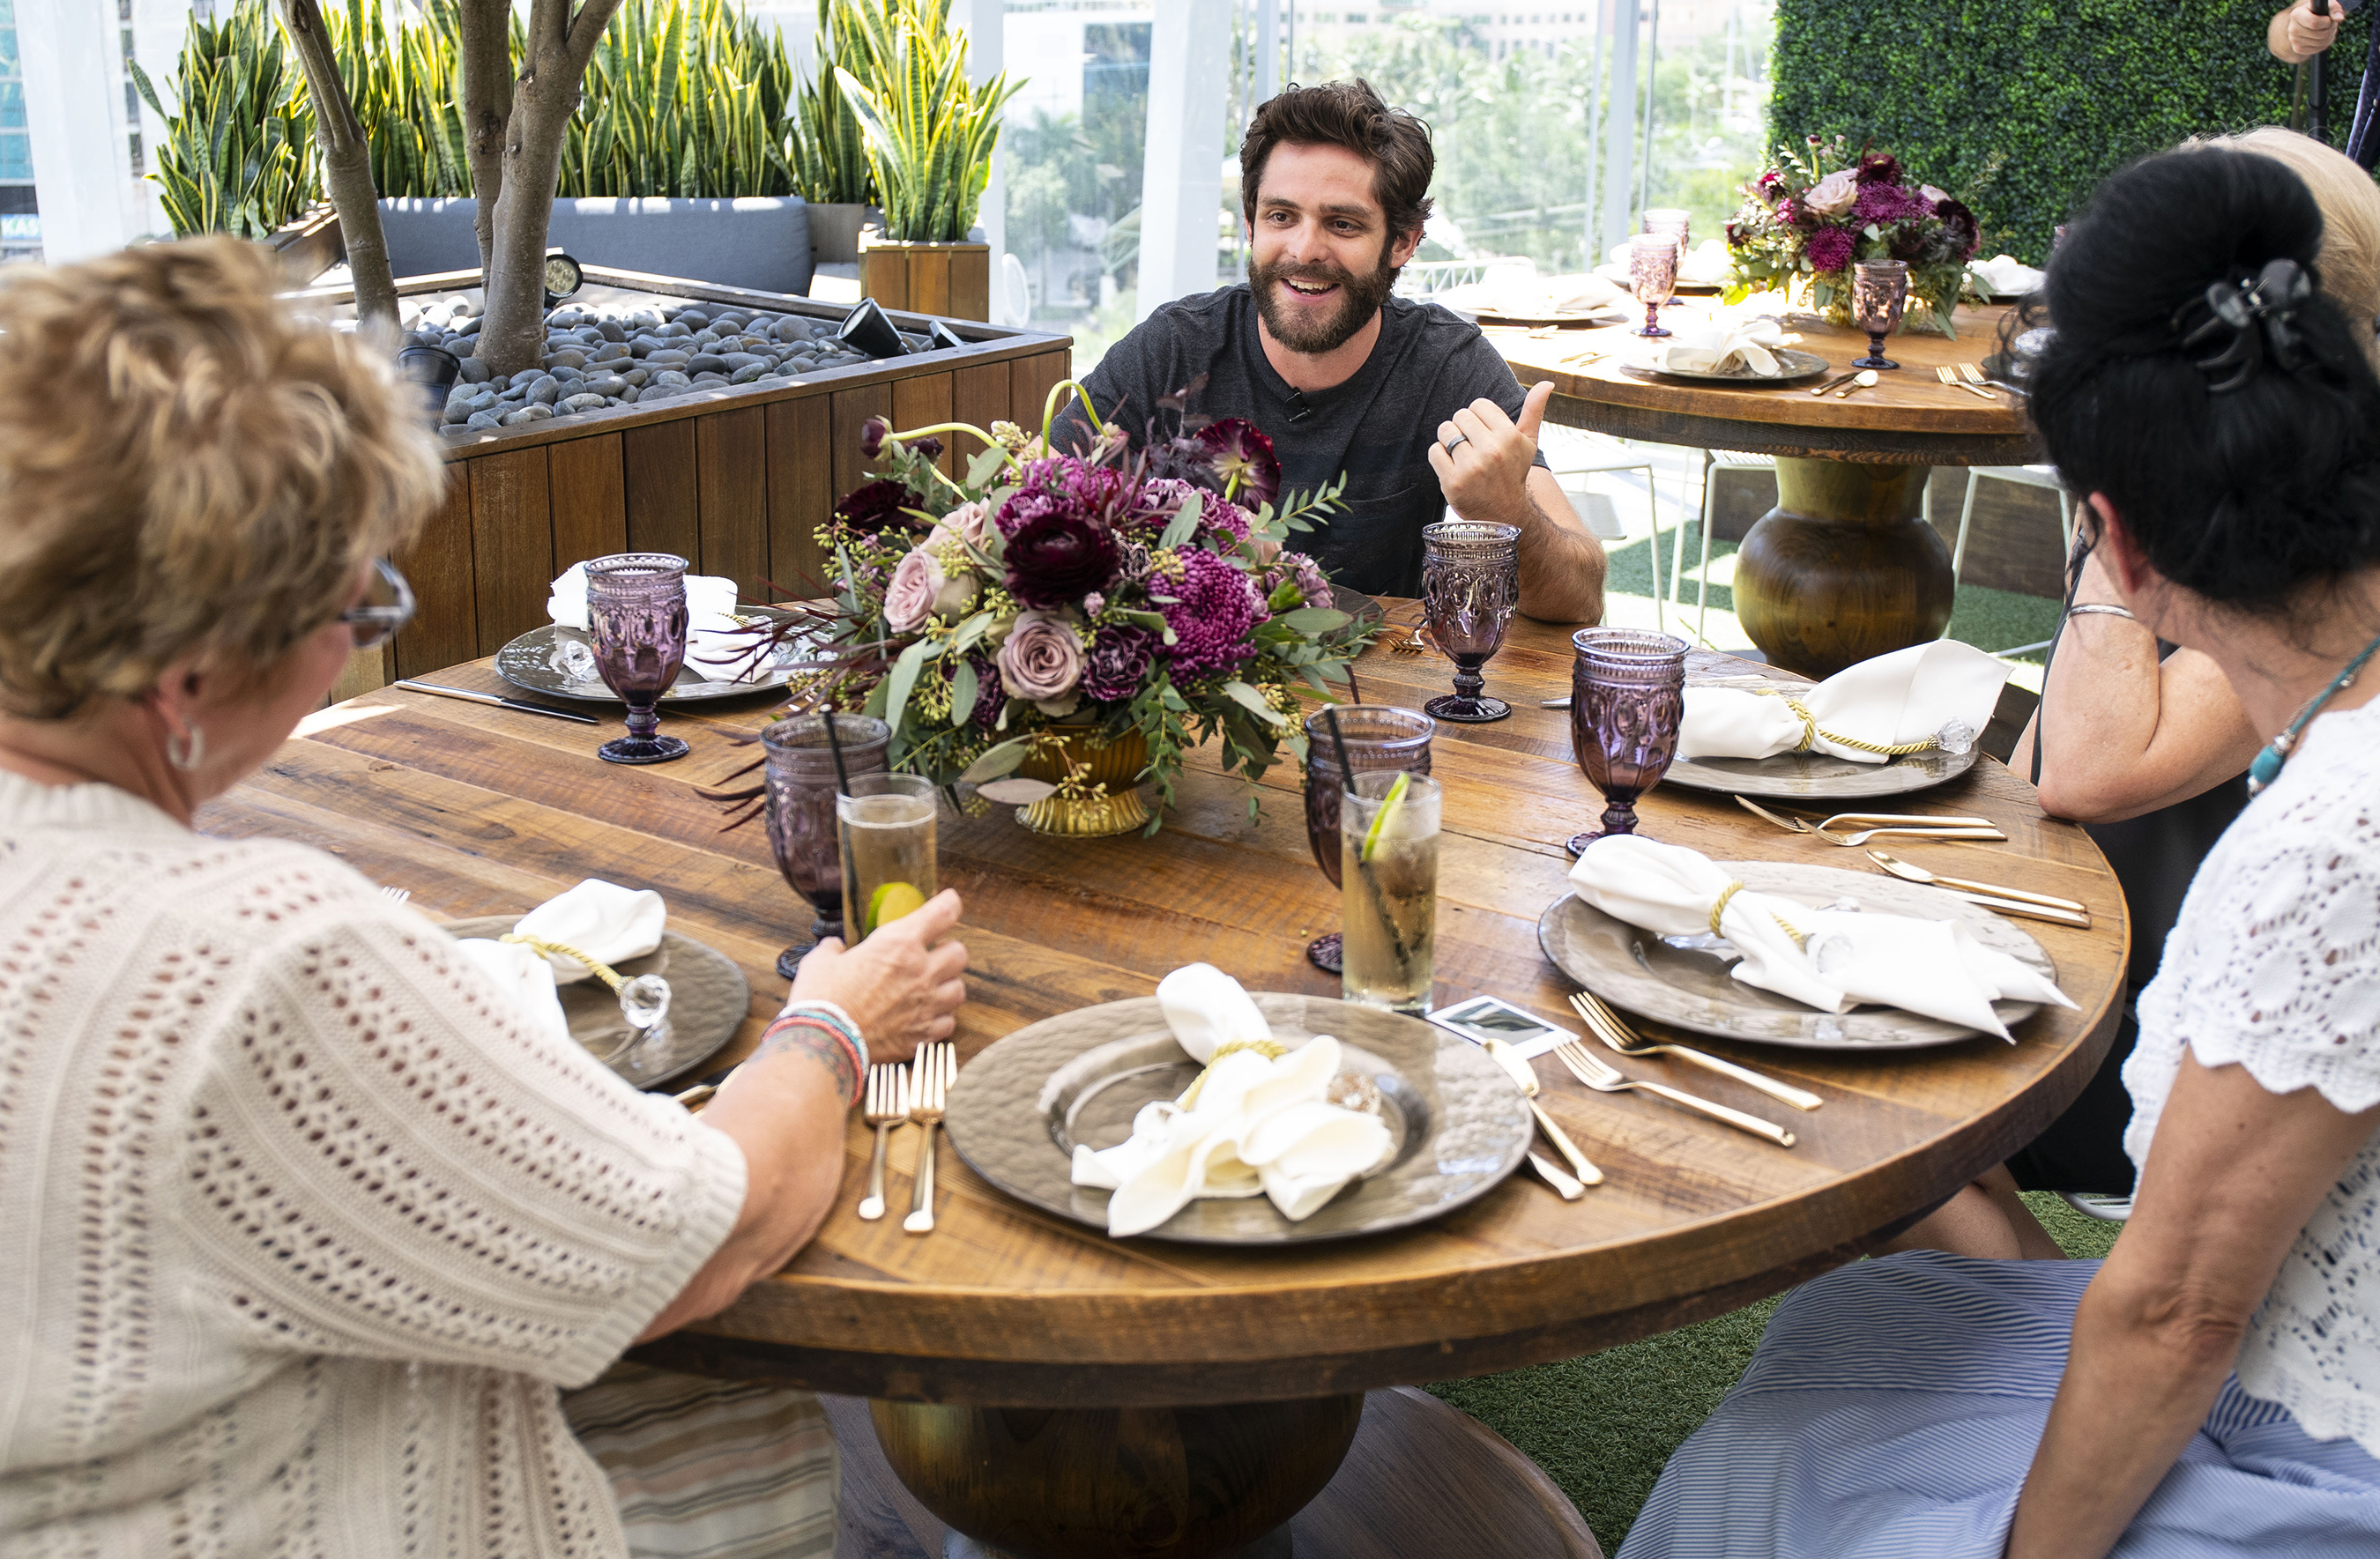 As part of the Crown Royal Mother's Day program, Thomas Rhett sat down with the moms to discuss their experiences and selflessness as Mothers of Military.